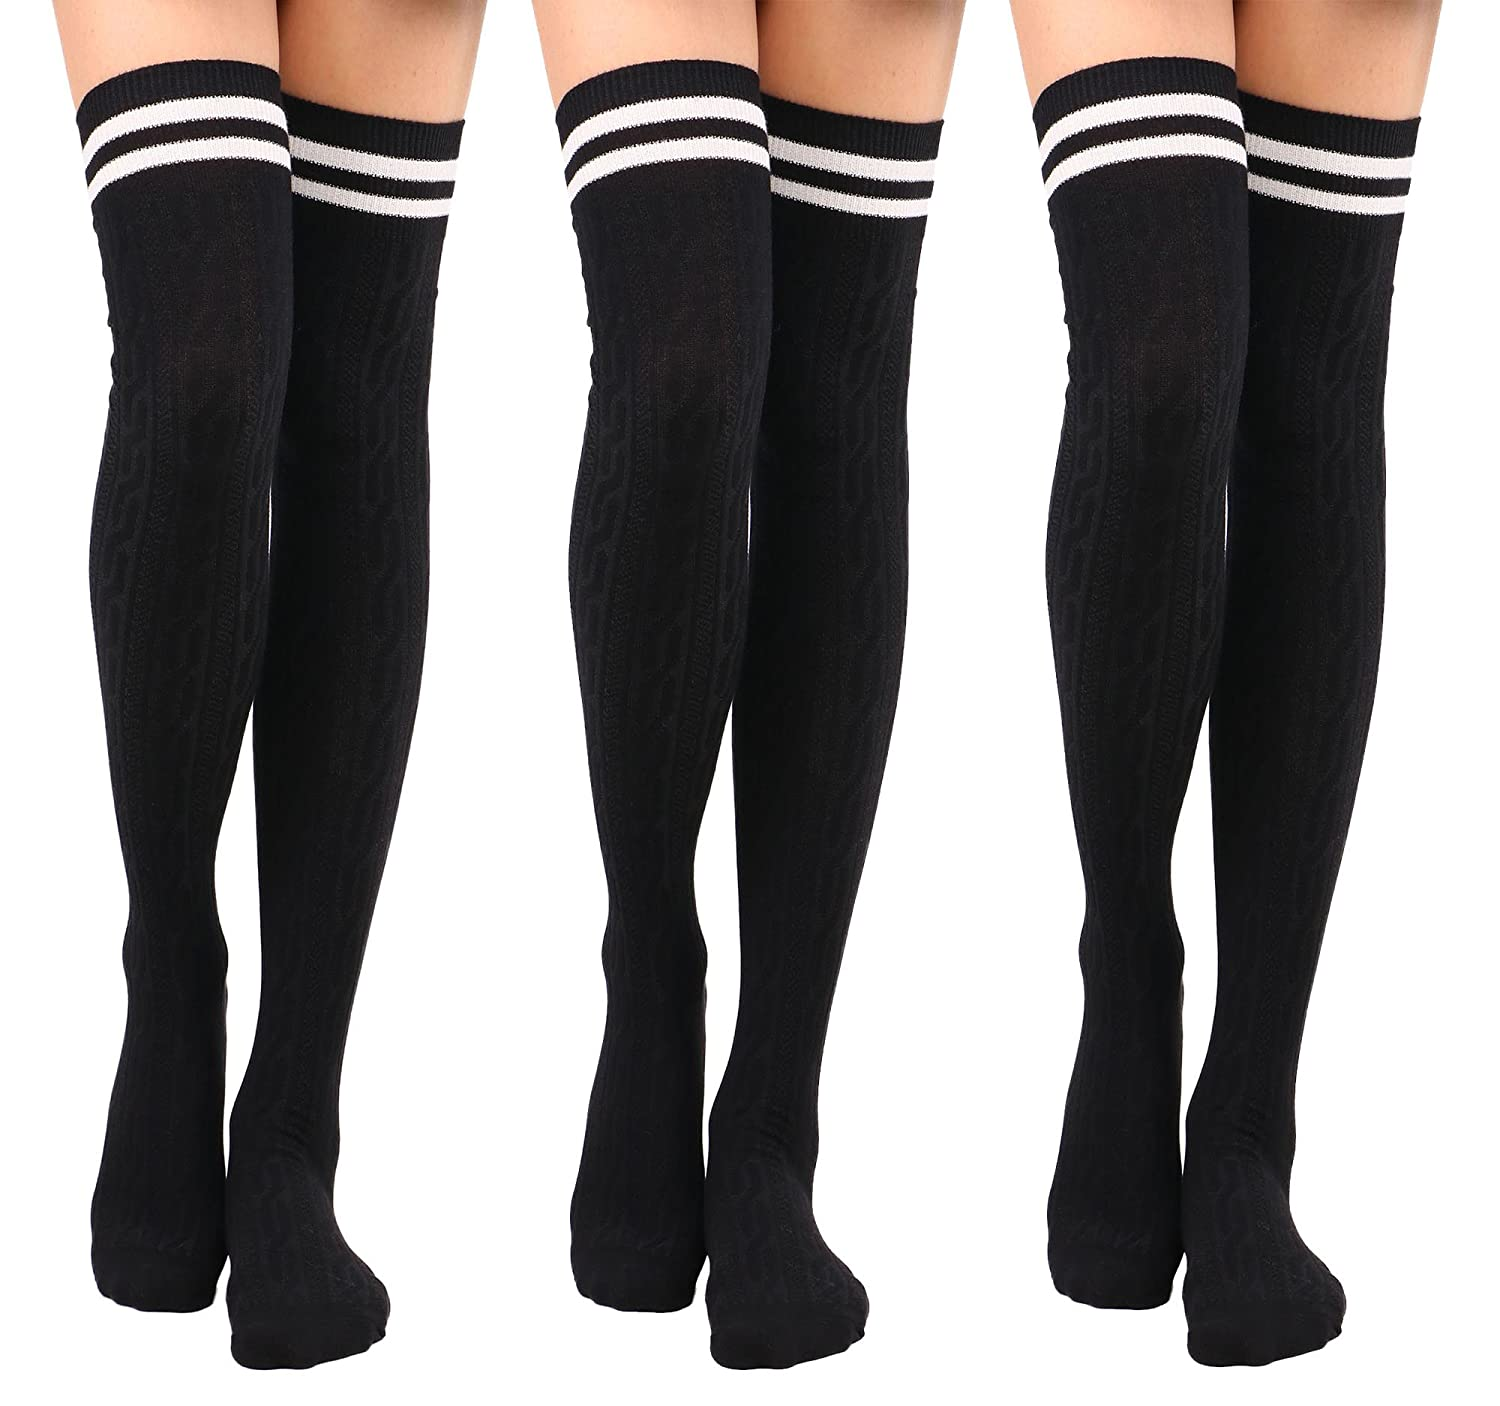 95599363494 Knee High Socks Women s Thigh High Cable Knit Striped Winter Socks ...